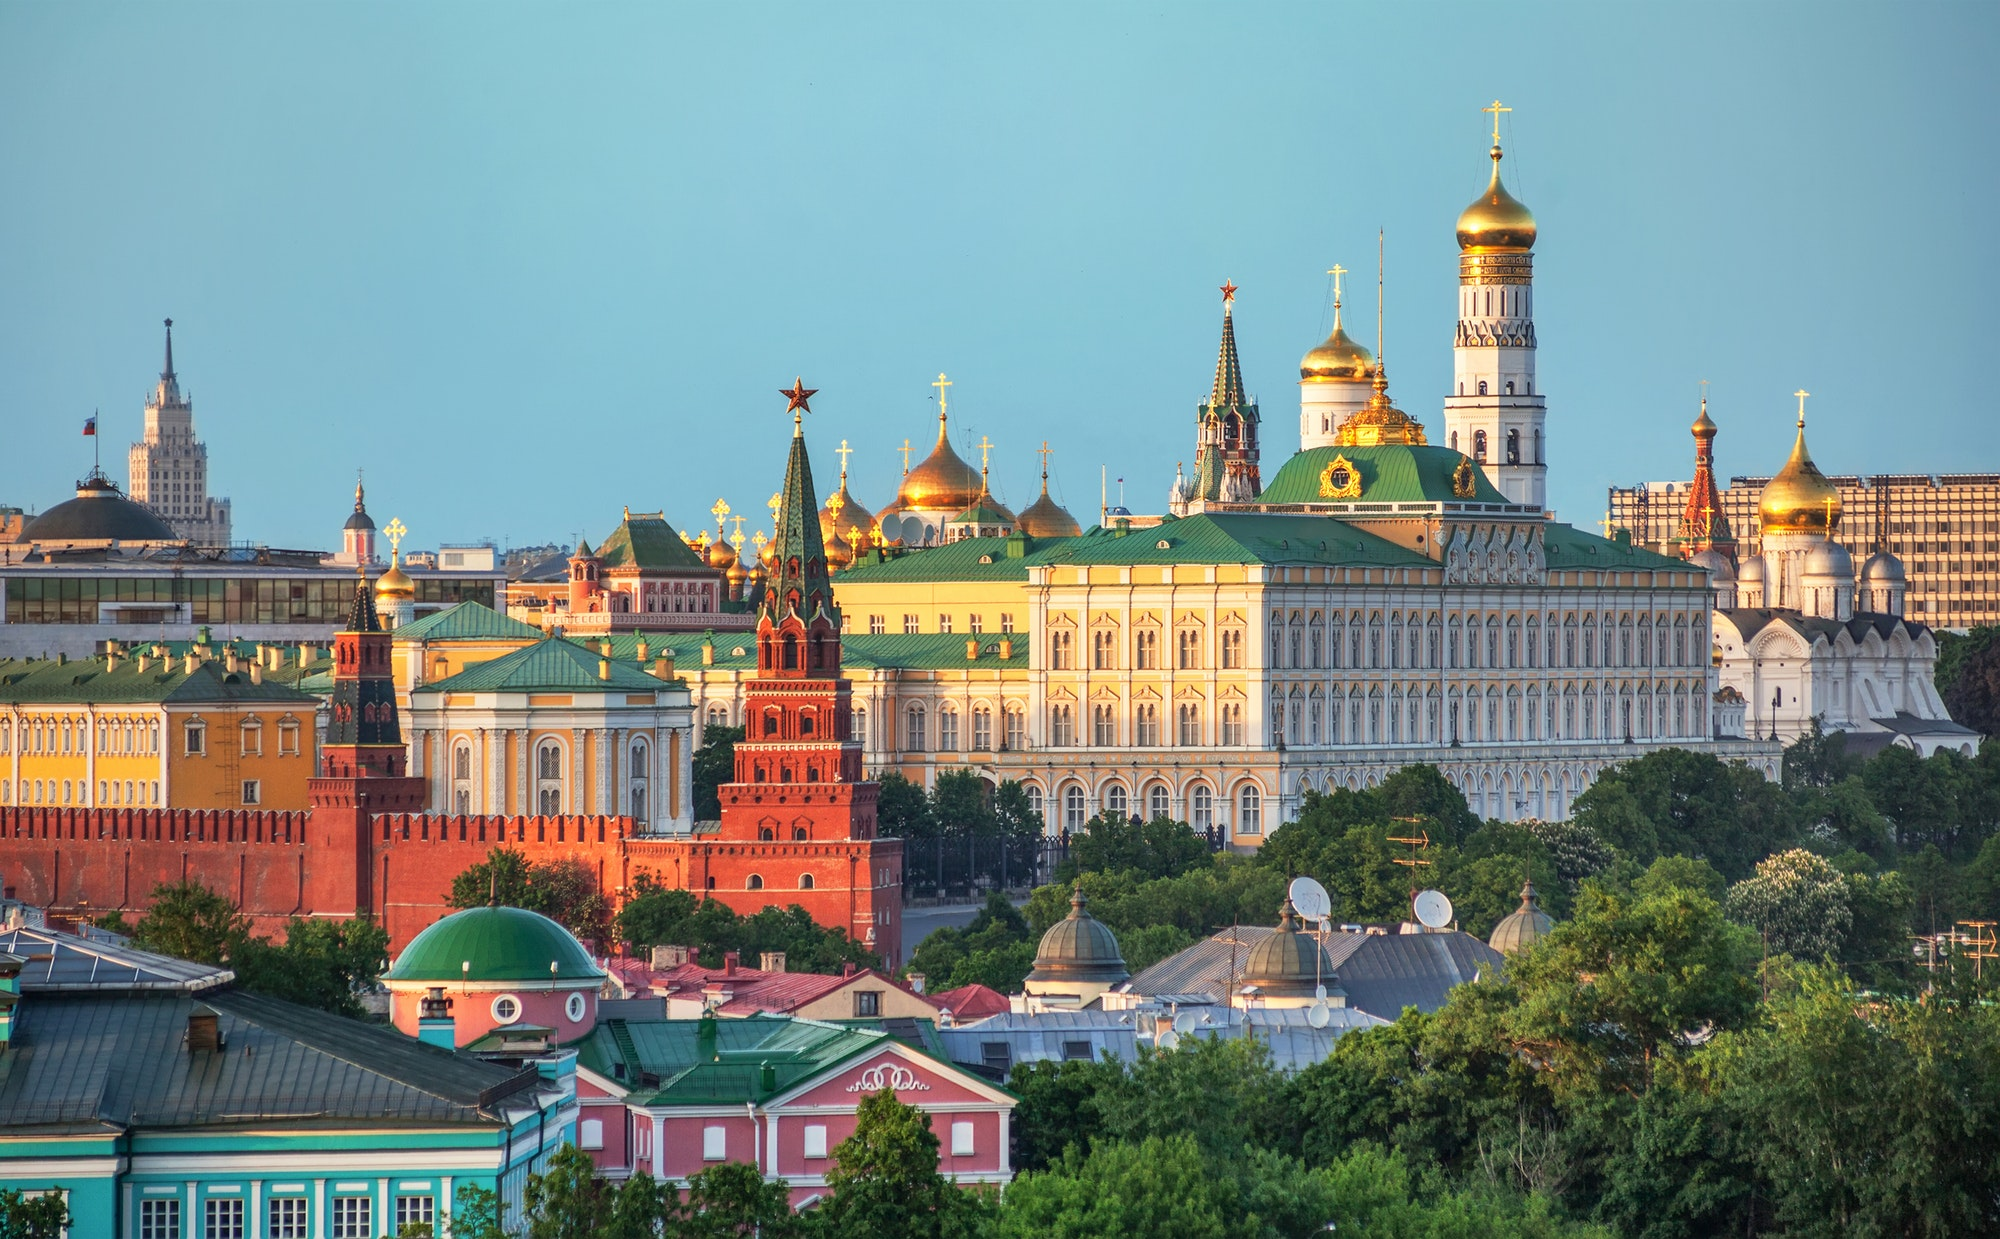 View of the Kremlin in Moscow, Russia